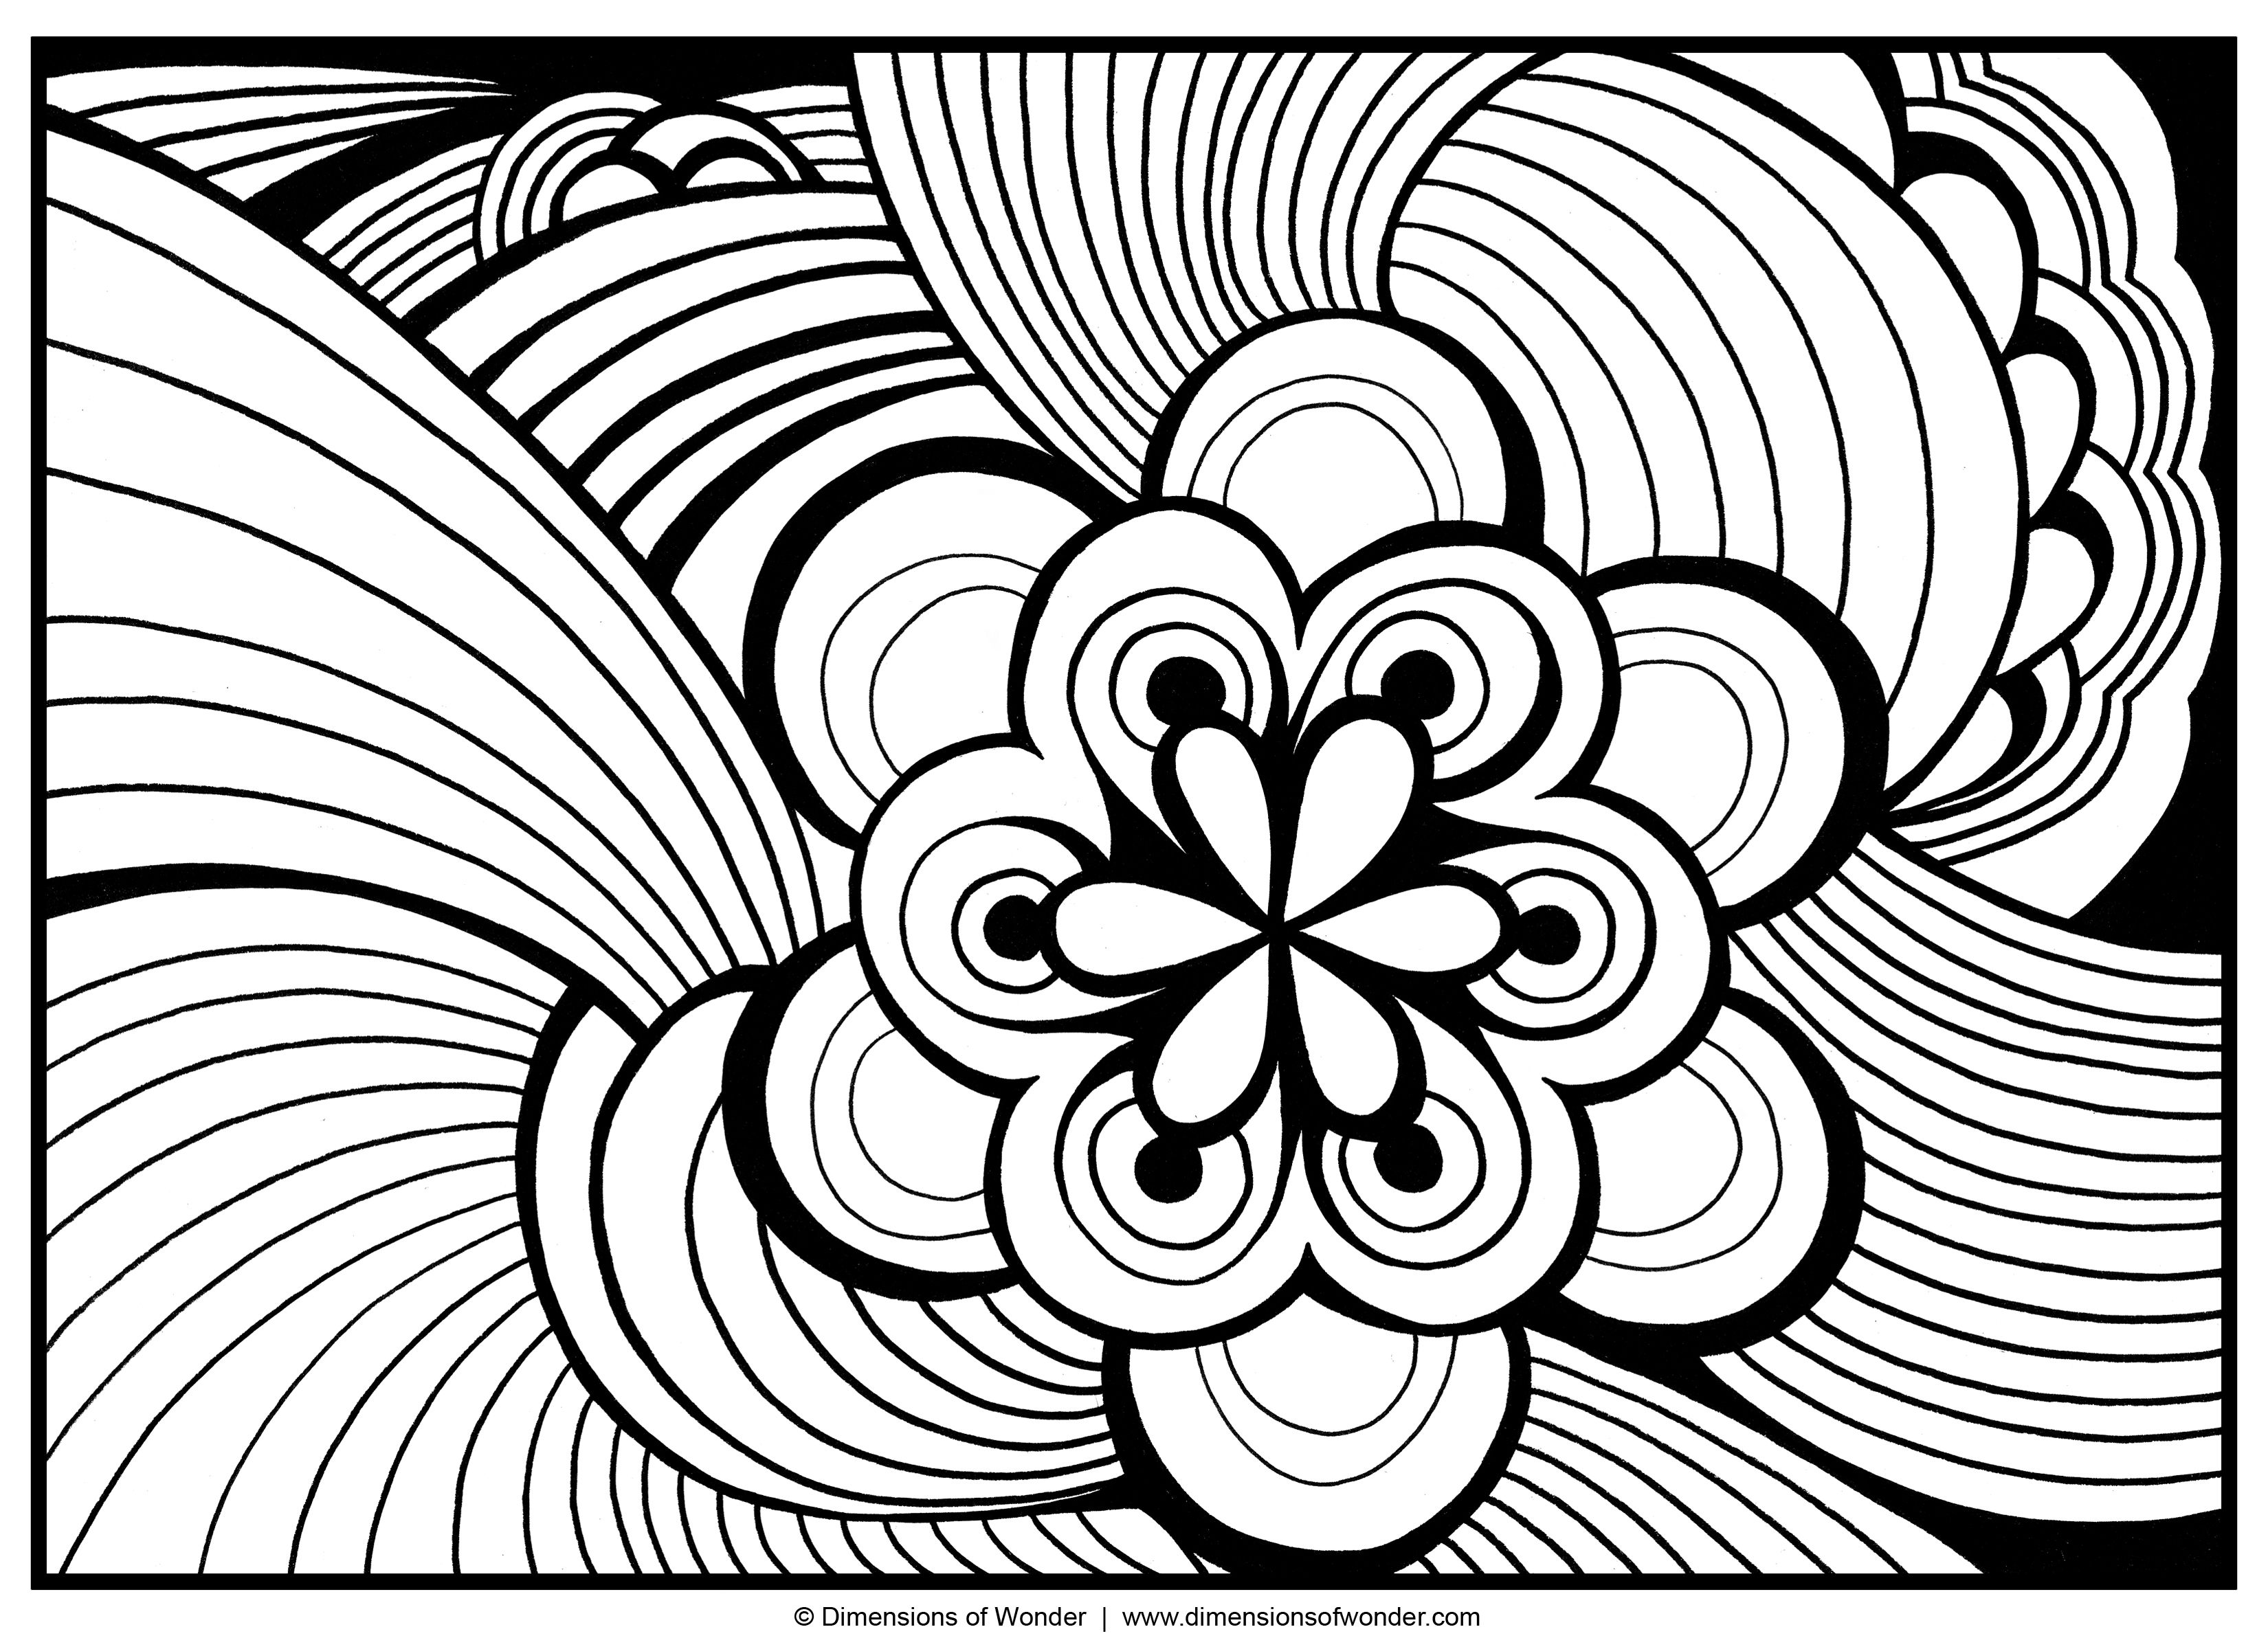 adults coloring book online : Great Coloring Pages For Adults Abstract Flowers One Of The Coloring Pages For Adults Abstract Flowers 2881 For Your Kids To Print Out And Find Similar Of